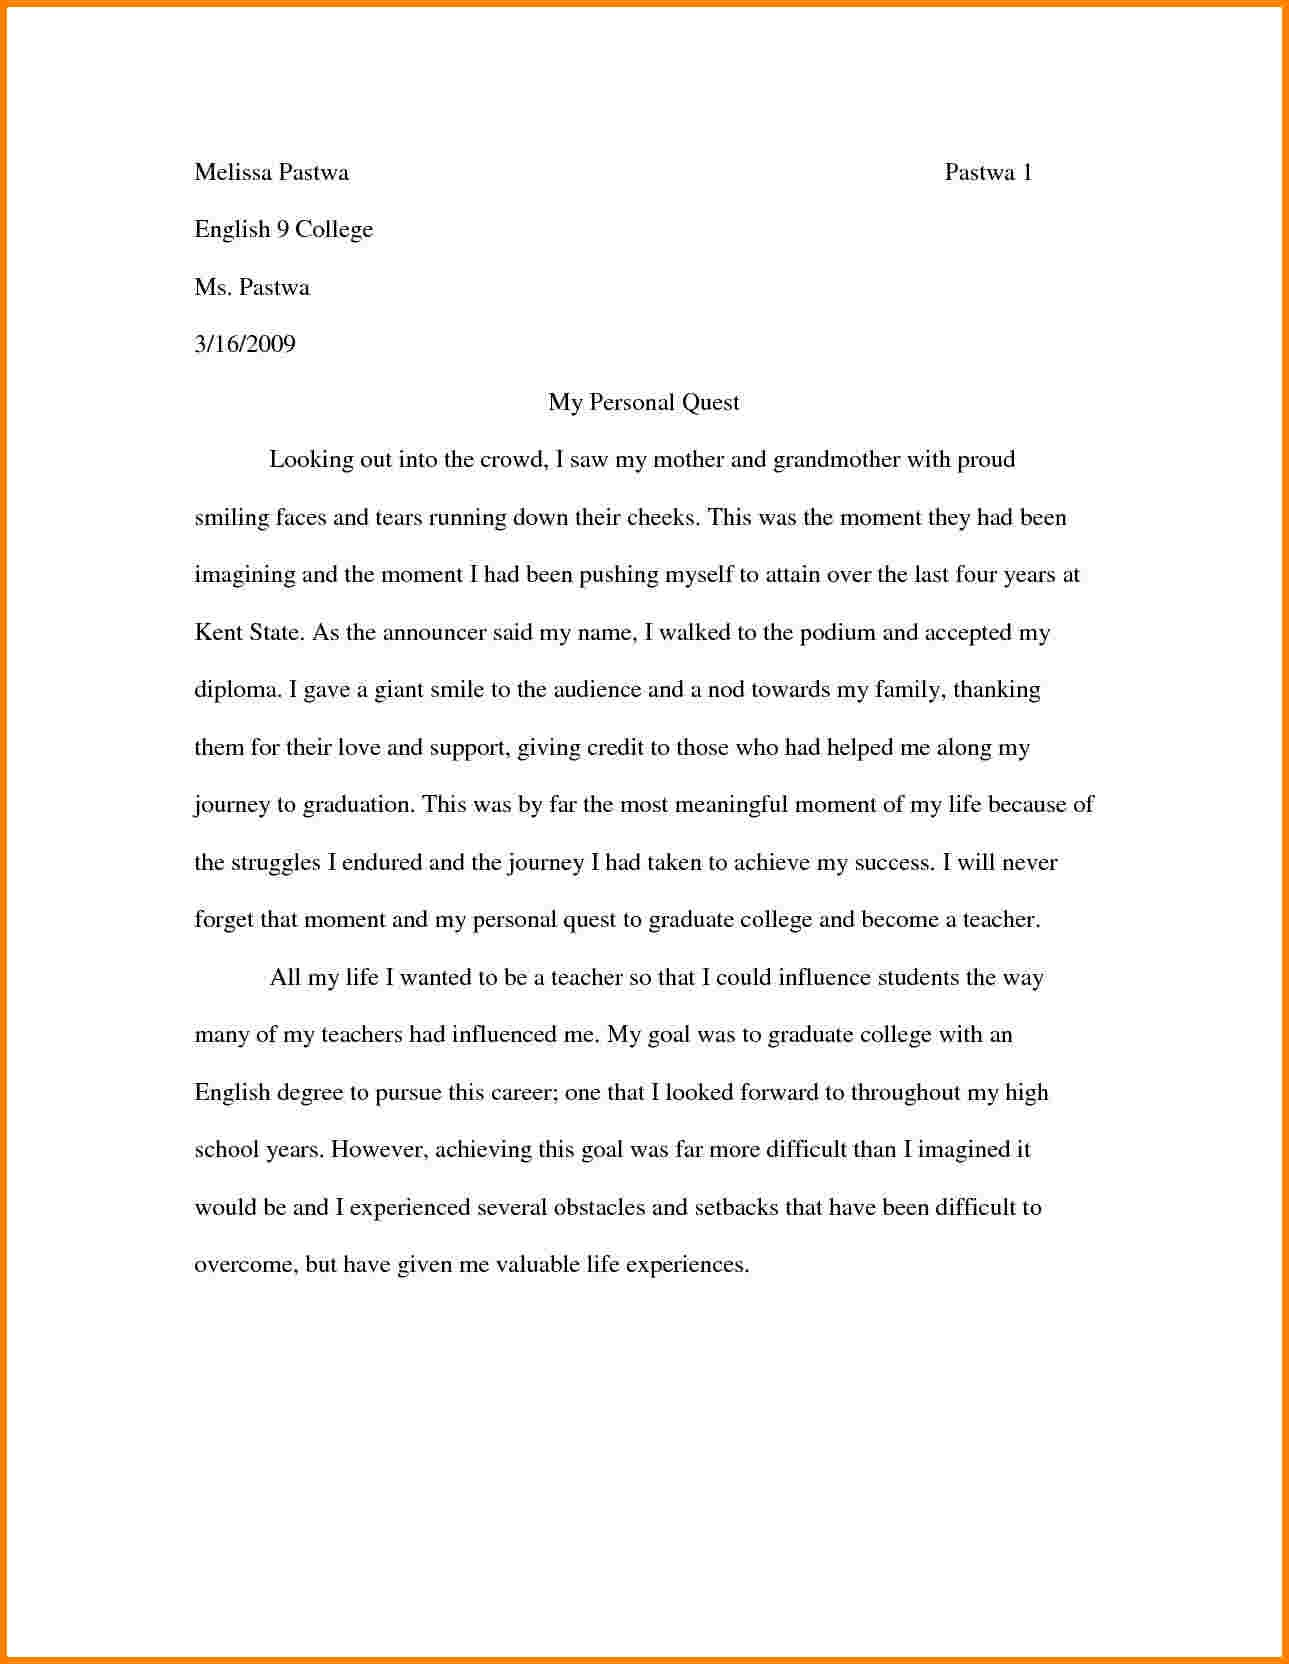 essay on environmental pollution in 500 words